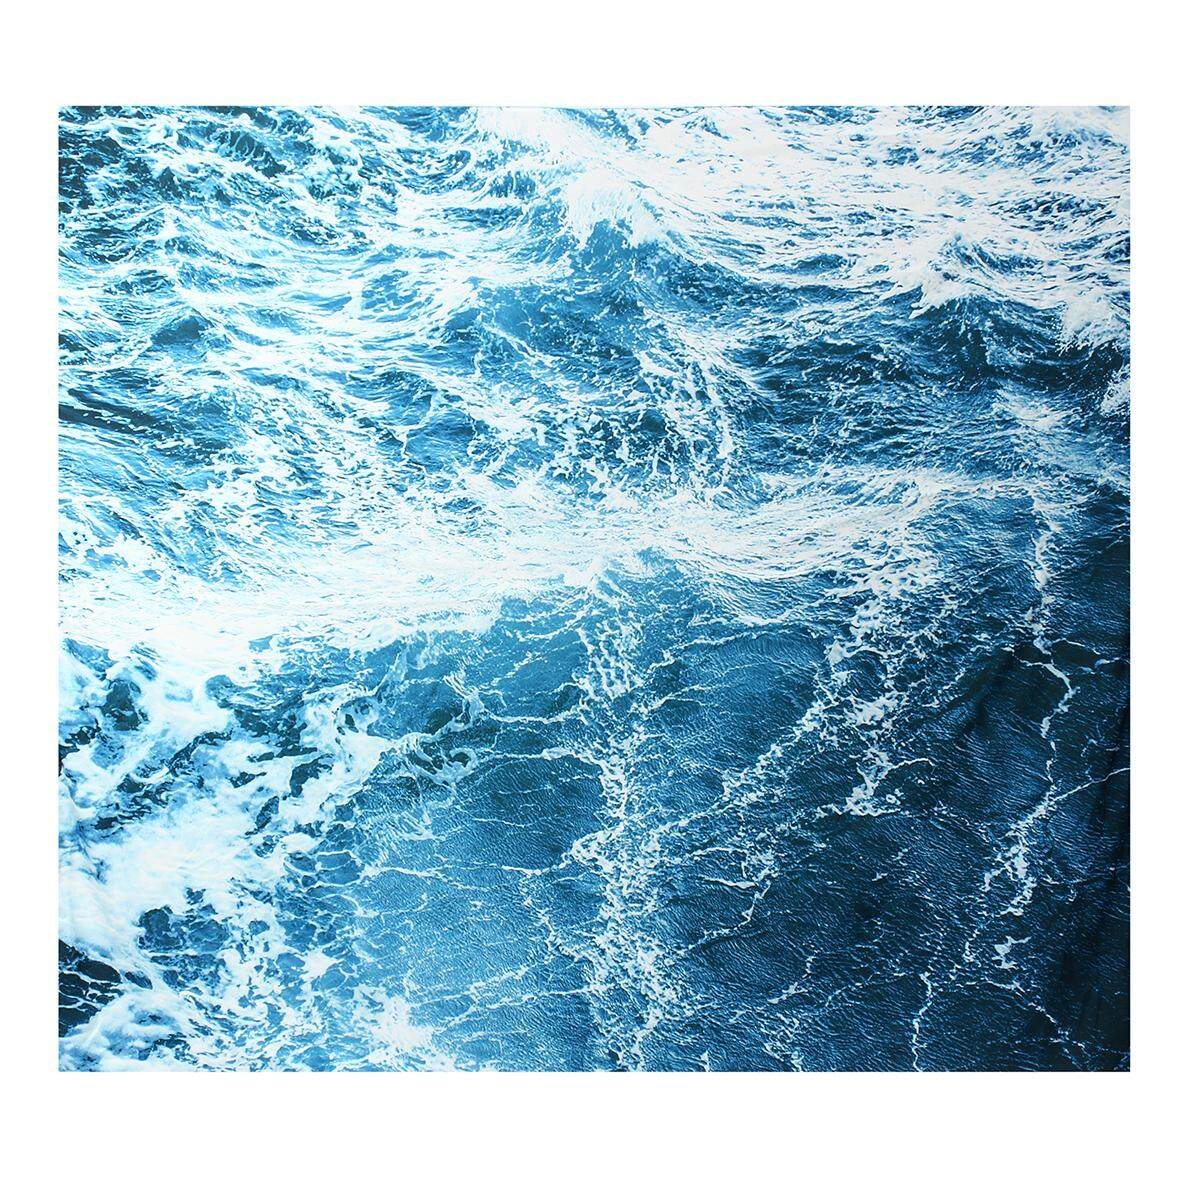 150cm x 130cm Art Wall Tapestry Ocean Wave Tapestry Wall Hanging Wall Tapestry Home Decoration .